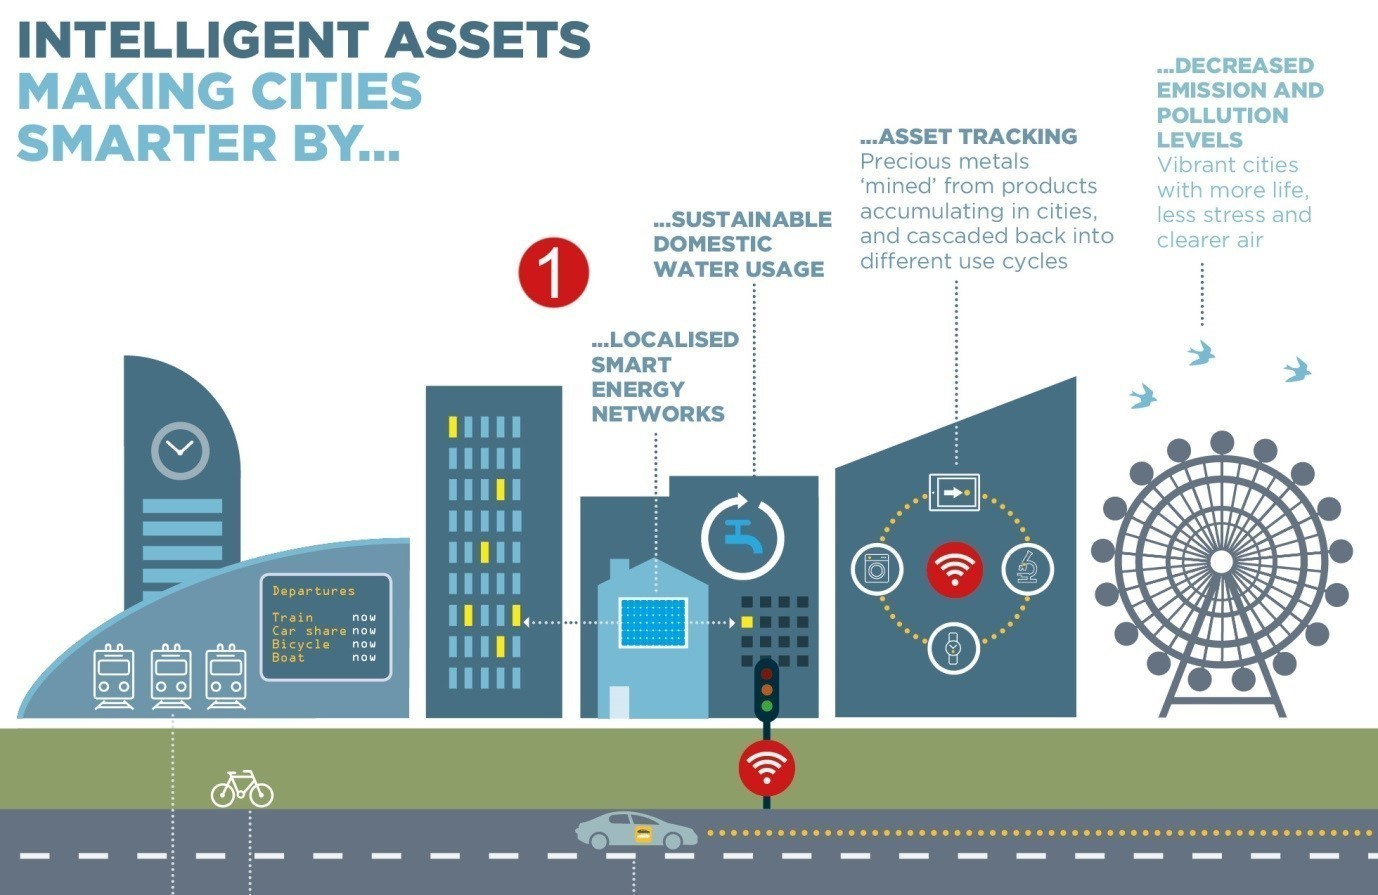 Intelligent assets making cities smarter by...